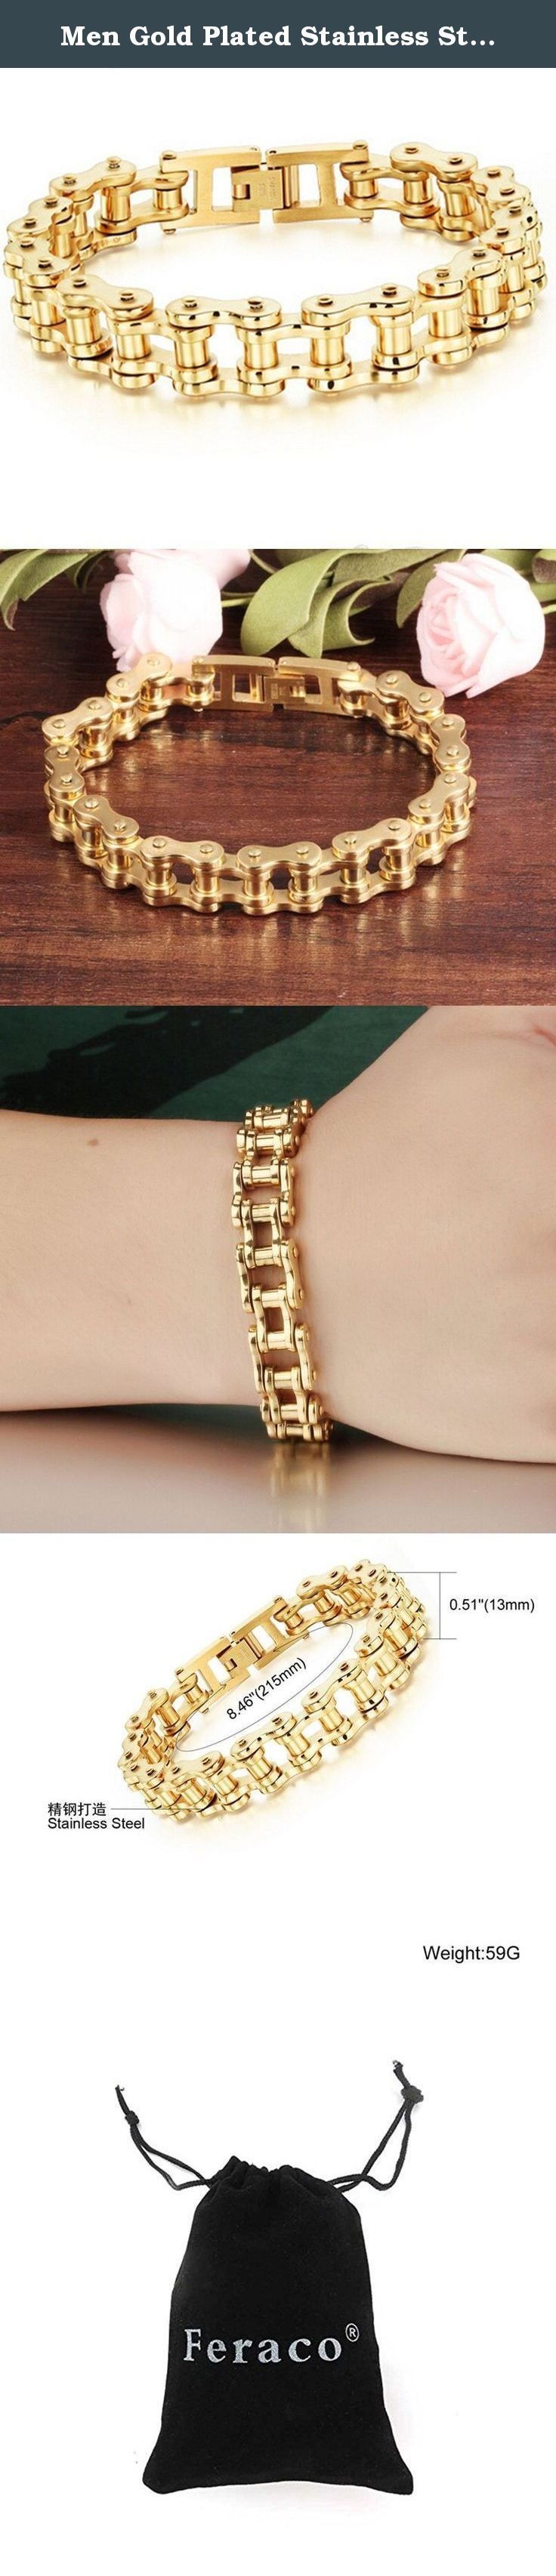 Men Gold Plated Stainless Steel Motorcycle Bike Chain Bracelet Link Wristband Bangle,8.4 Inch. Heavy Metal Stainless Steel Men's Bike Chain Bracelets Motorcycle Biker Link Bracelet This bracelet is perfect for someone who loves riding road ,skateboards,and mountain bicycles Bracelet Feature: Condition: 100% Brand new Quantity:1 piece. Main Material: 316L Stainless steel More Details: as the pictures show Why choose Feraco Jewellery? Feraco is a well-known brand in the jewellery field.Its...